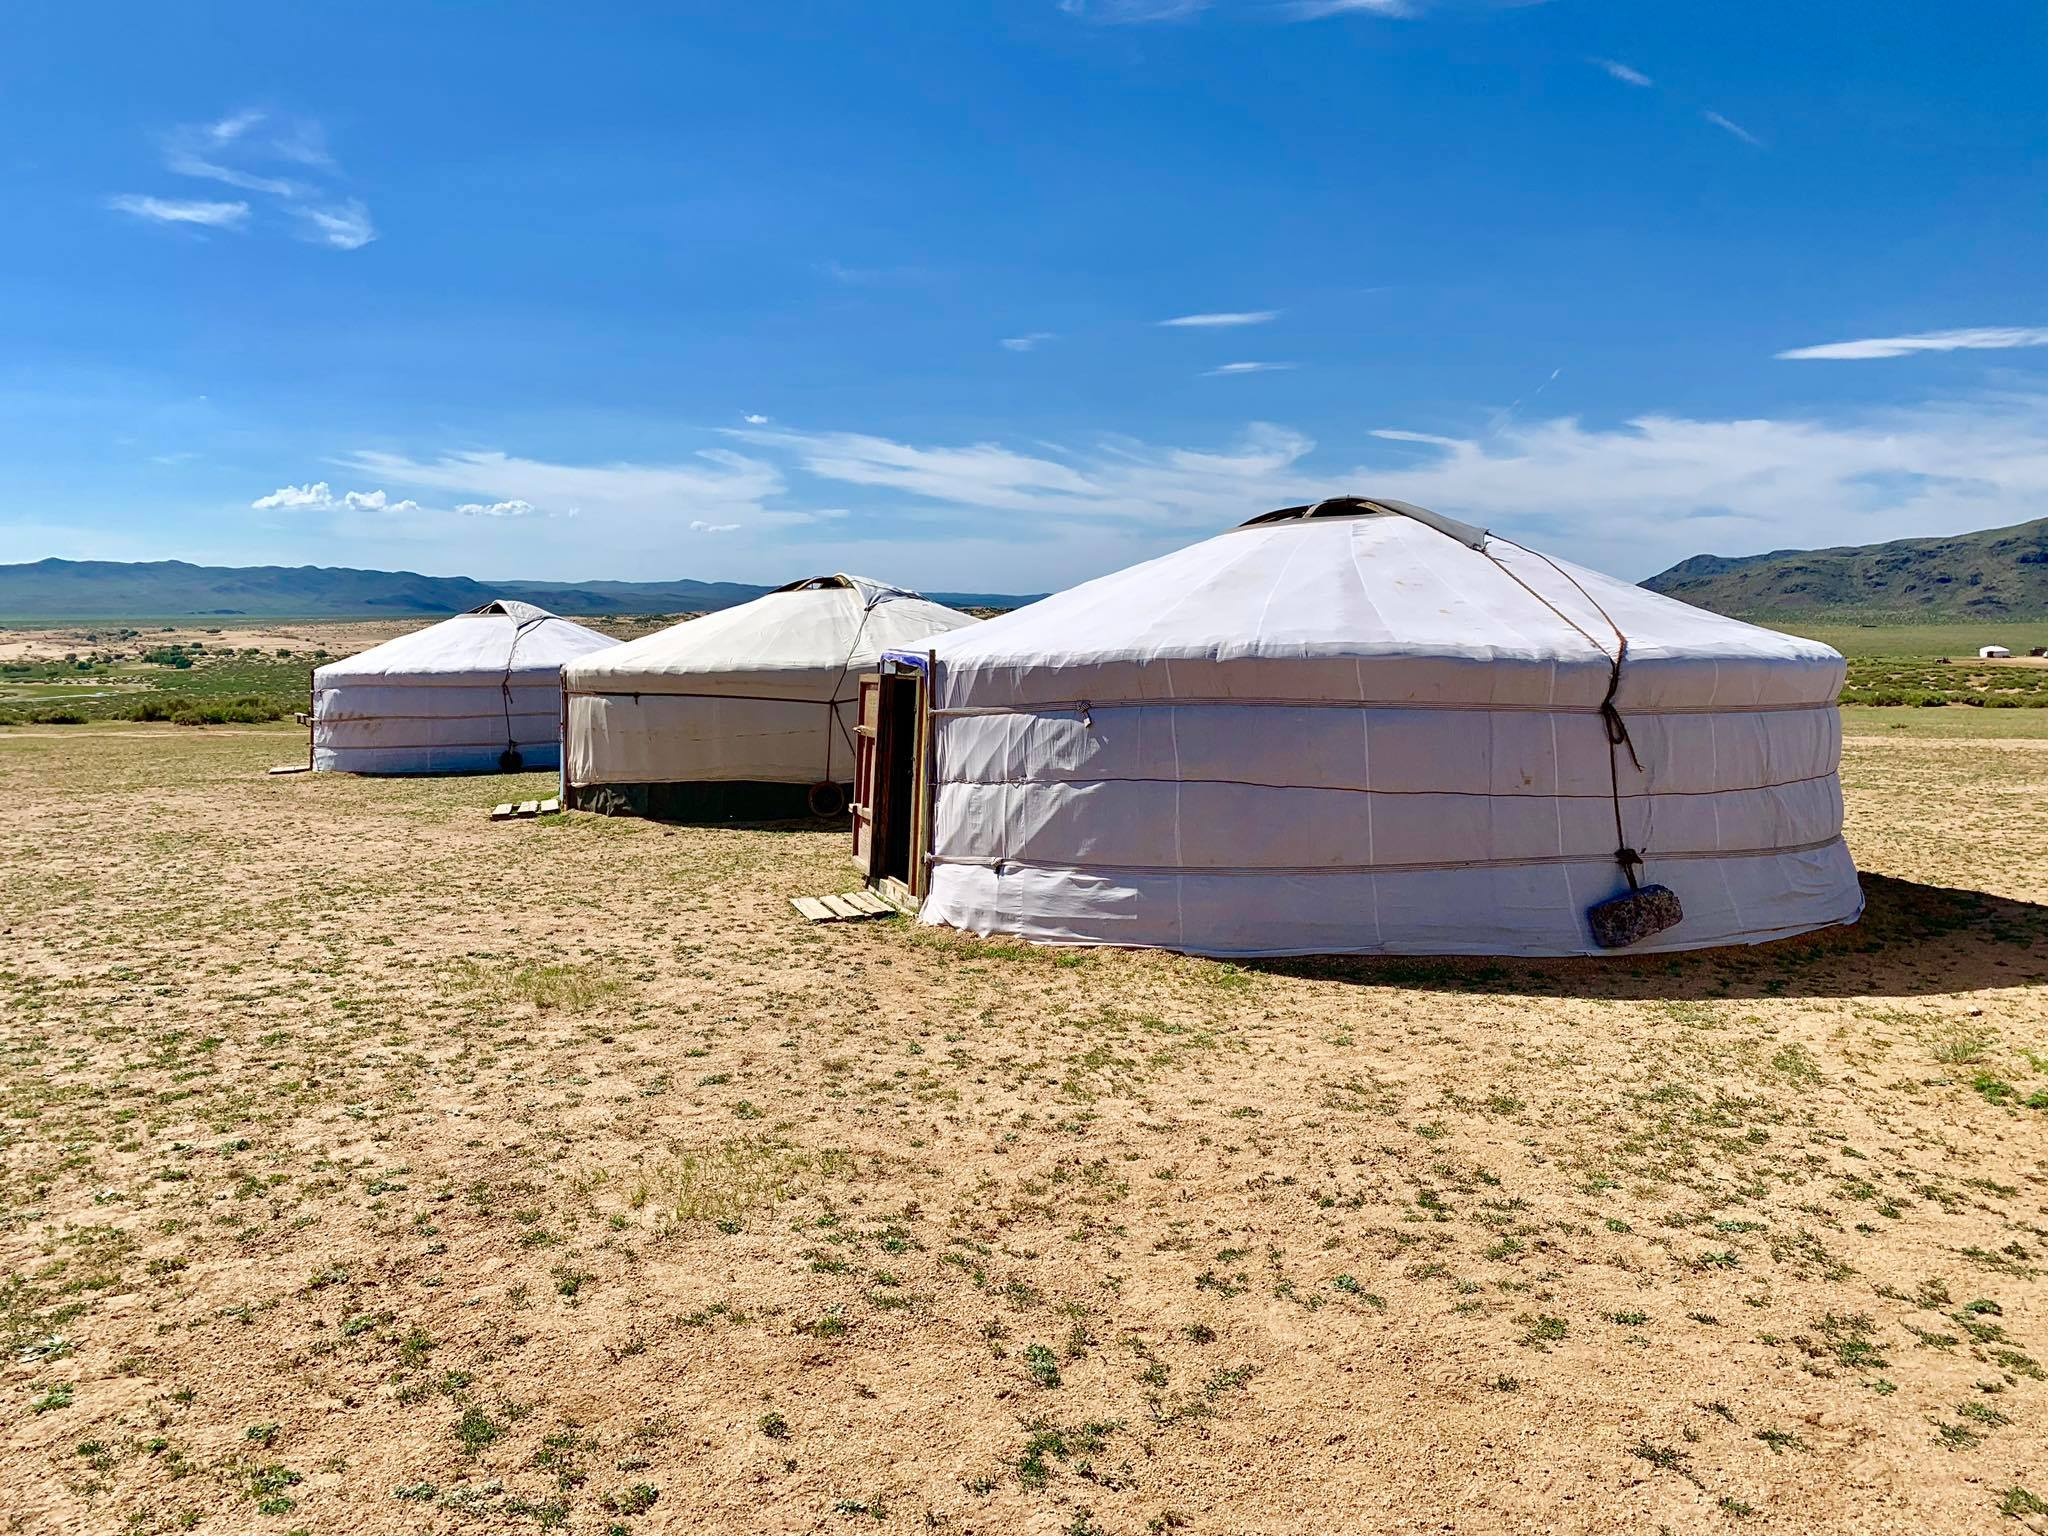 Kach Solo Travels in 2019 My place for 3 days here in Mongolia16.jpg